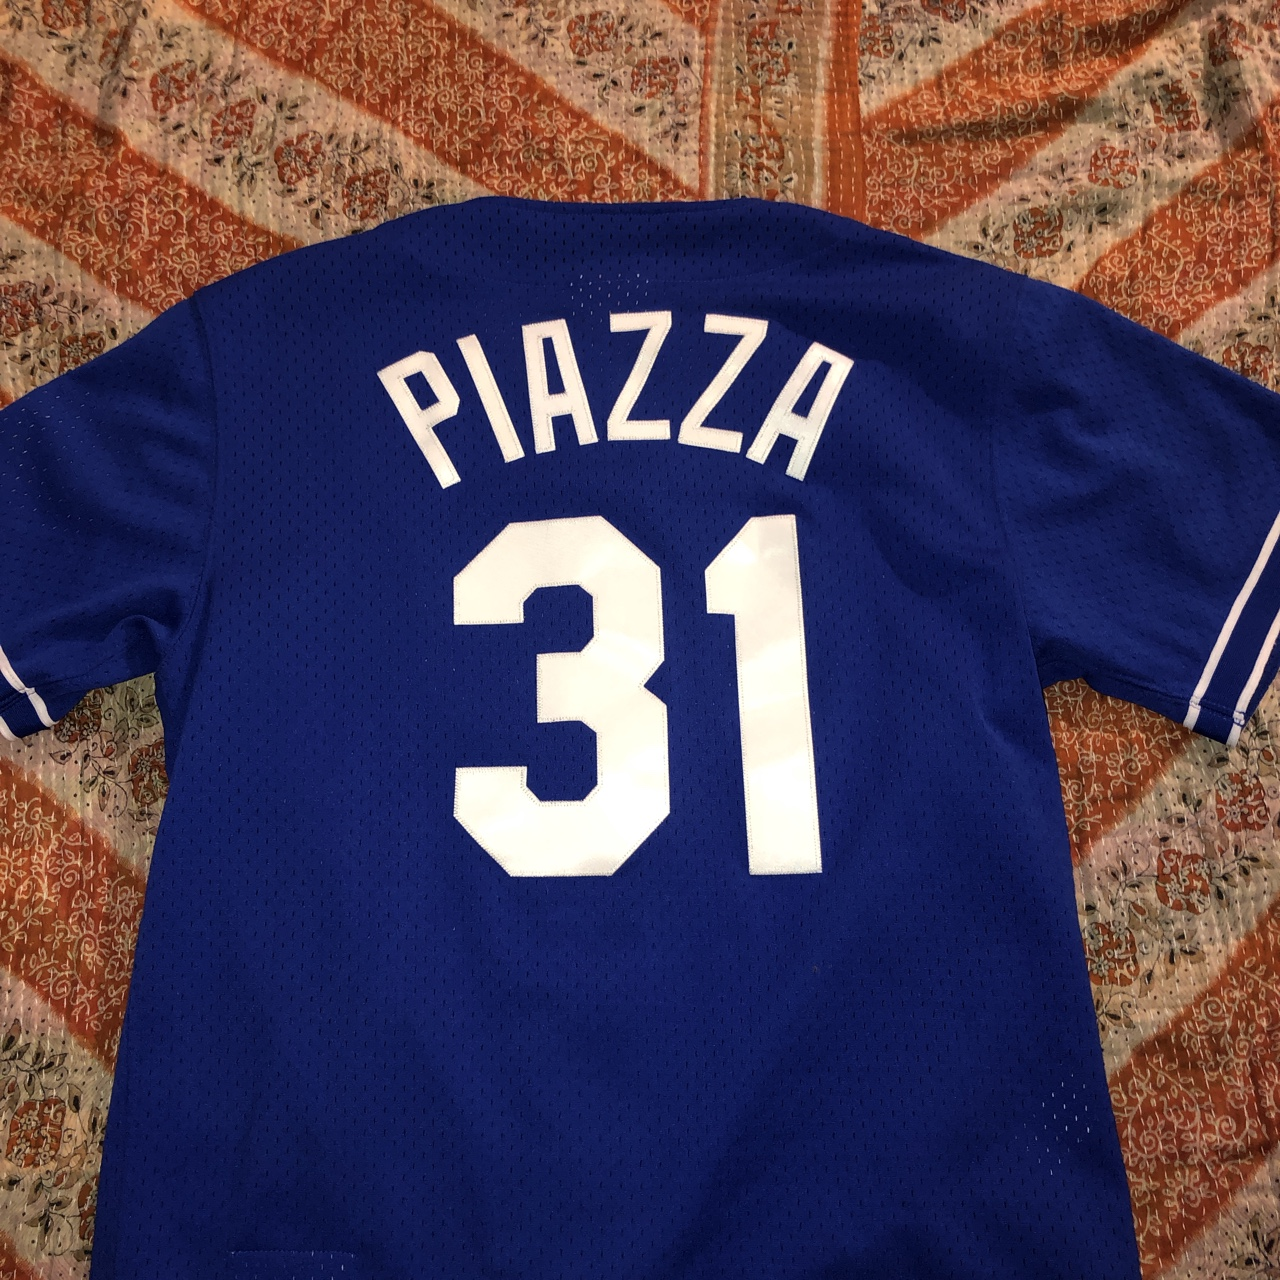 quality design 769e8 15357 Vintage looking Dodgers Mike Piazza baseball jersey.... - Depop